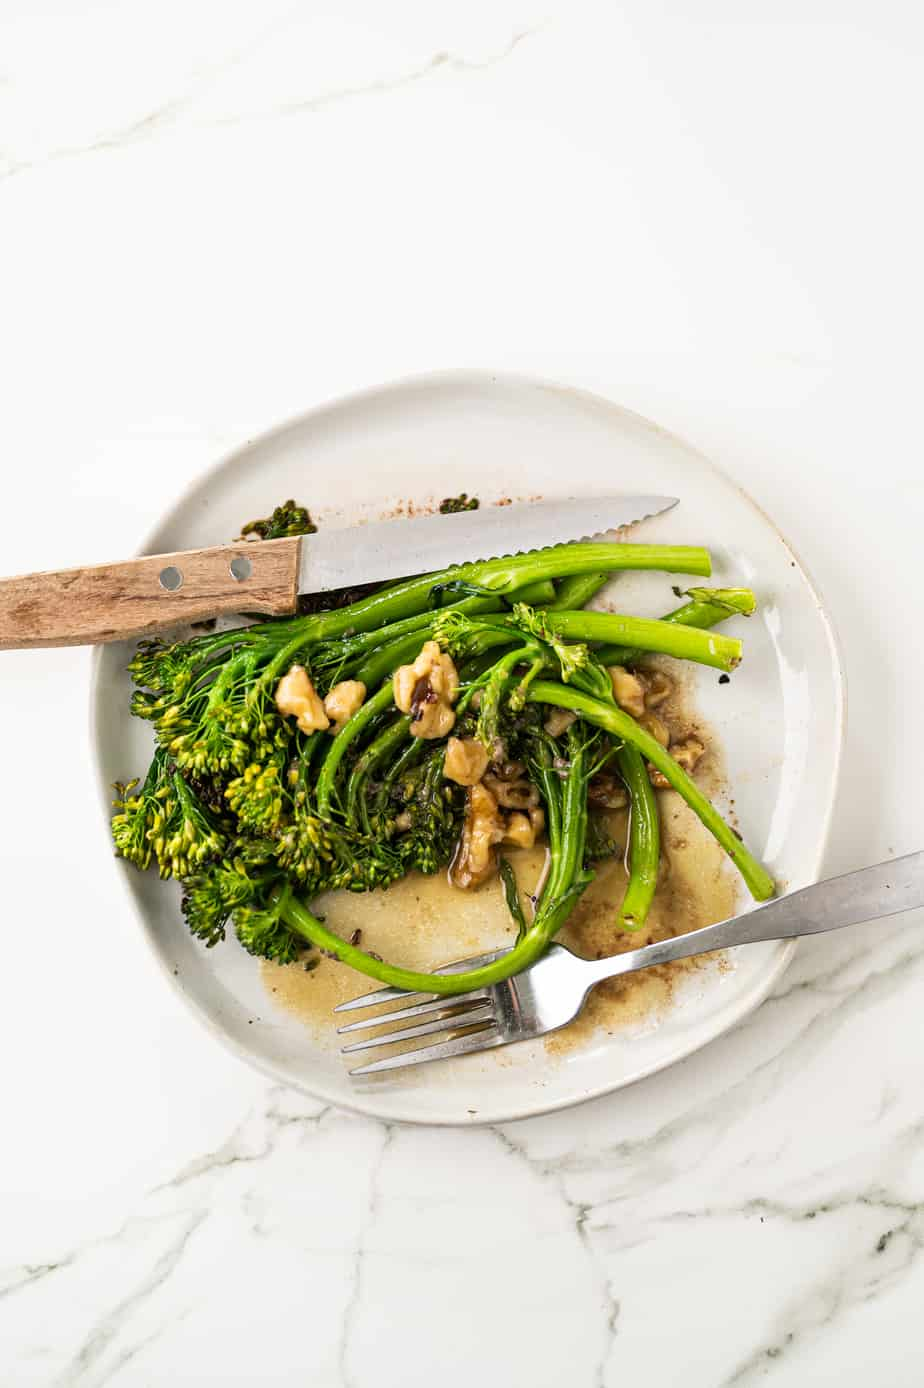 broccolini on a plate on marble with walnuts and vinaigrette